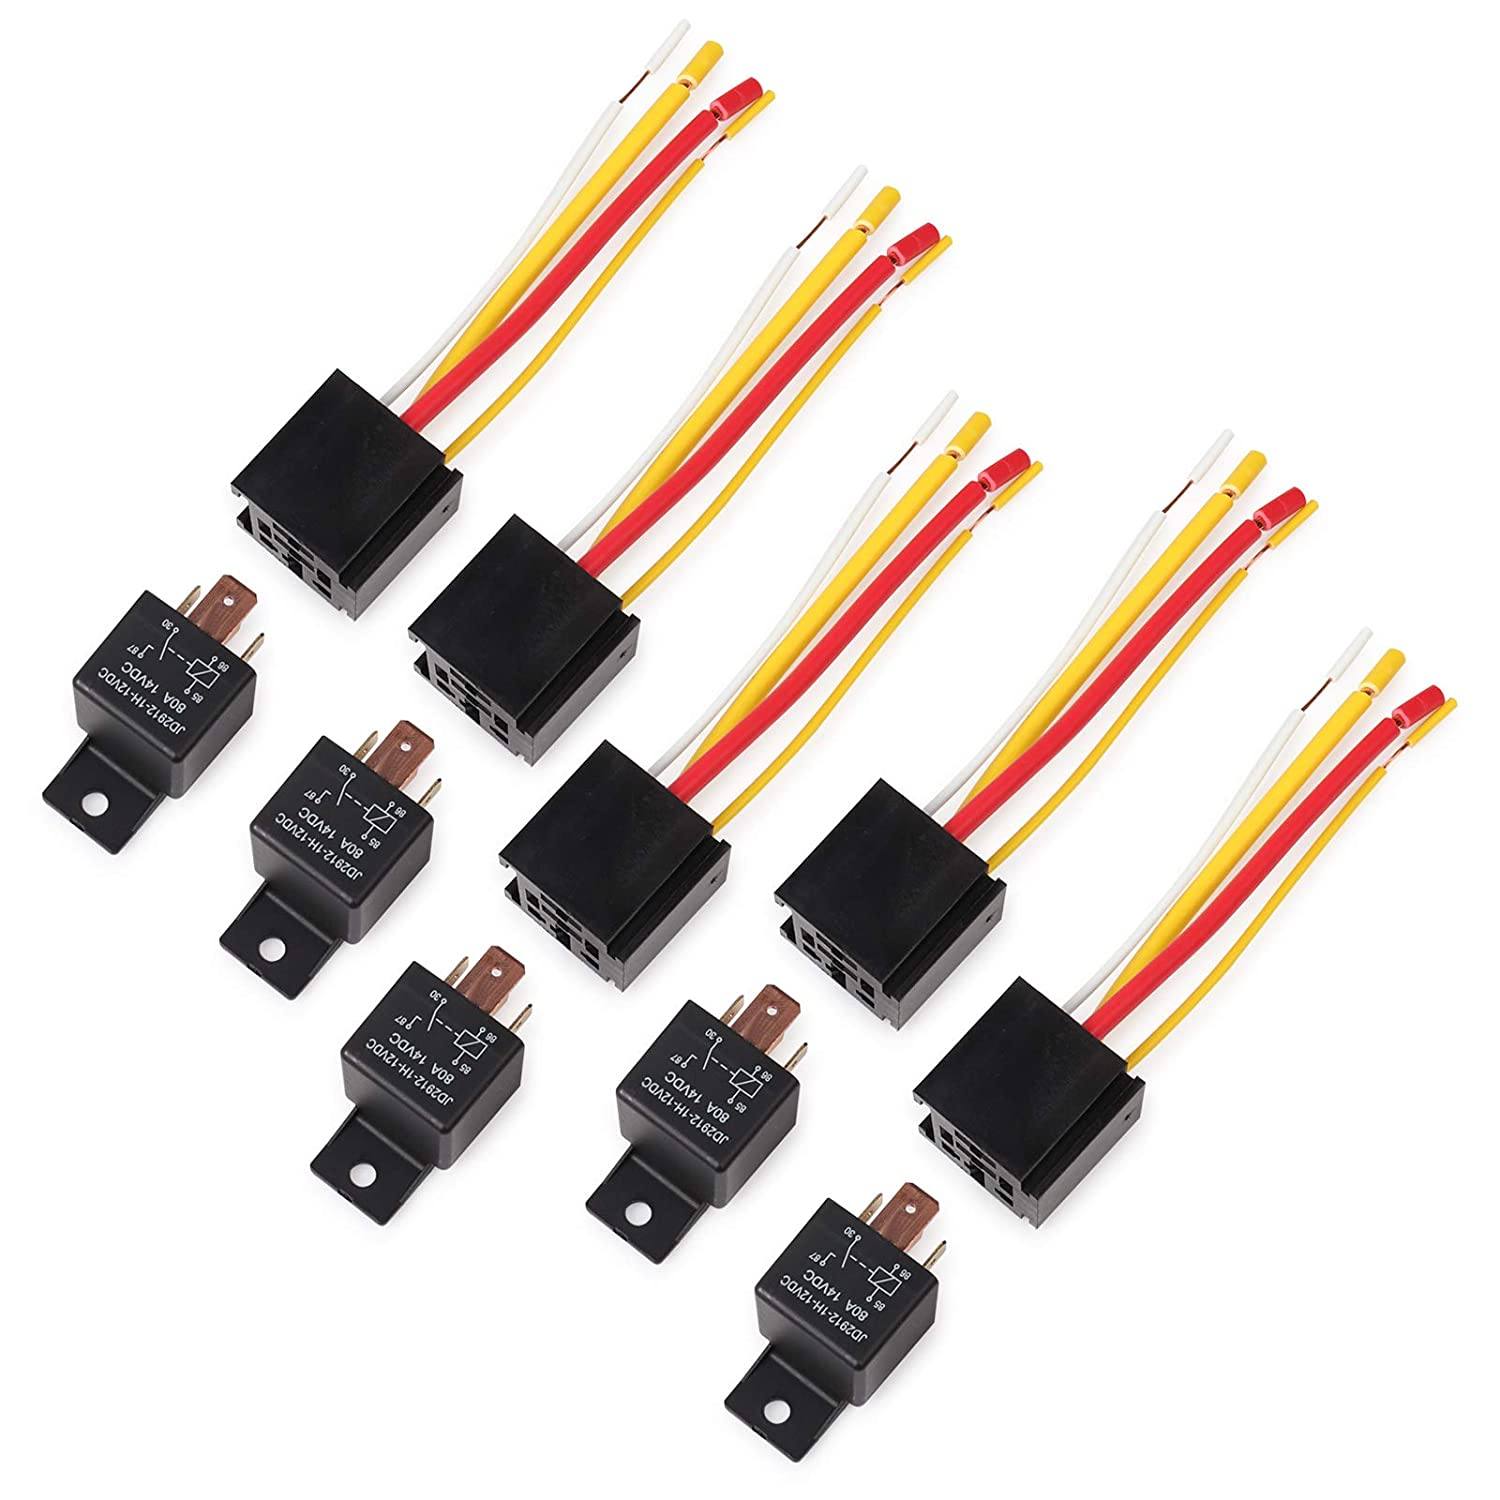 1 Pack Car Truck Motor Heavy Duty Heavy Duty 4-Pin 80A 12V on//Off normalement Ouvert SPST Relais Socket Plug-4 Fils Automobile Ehdis/®